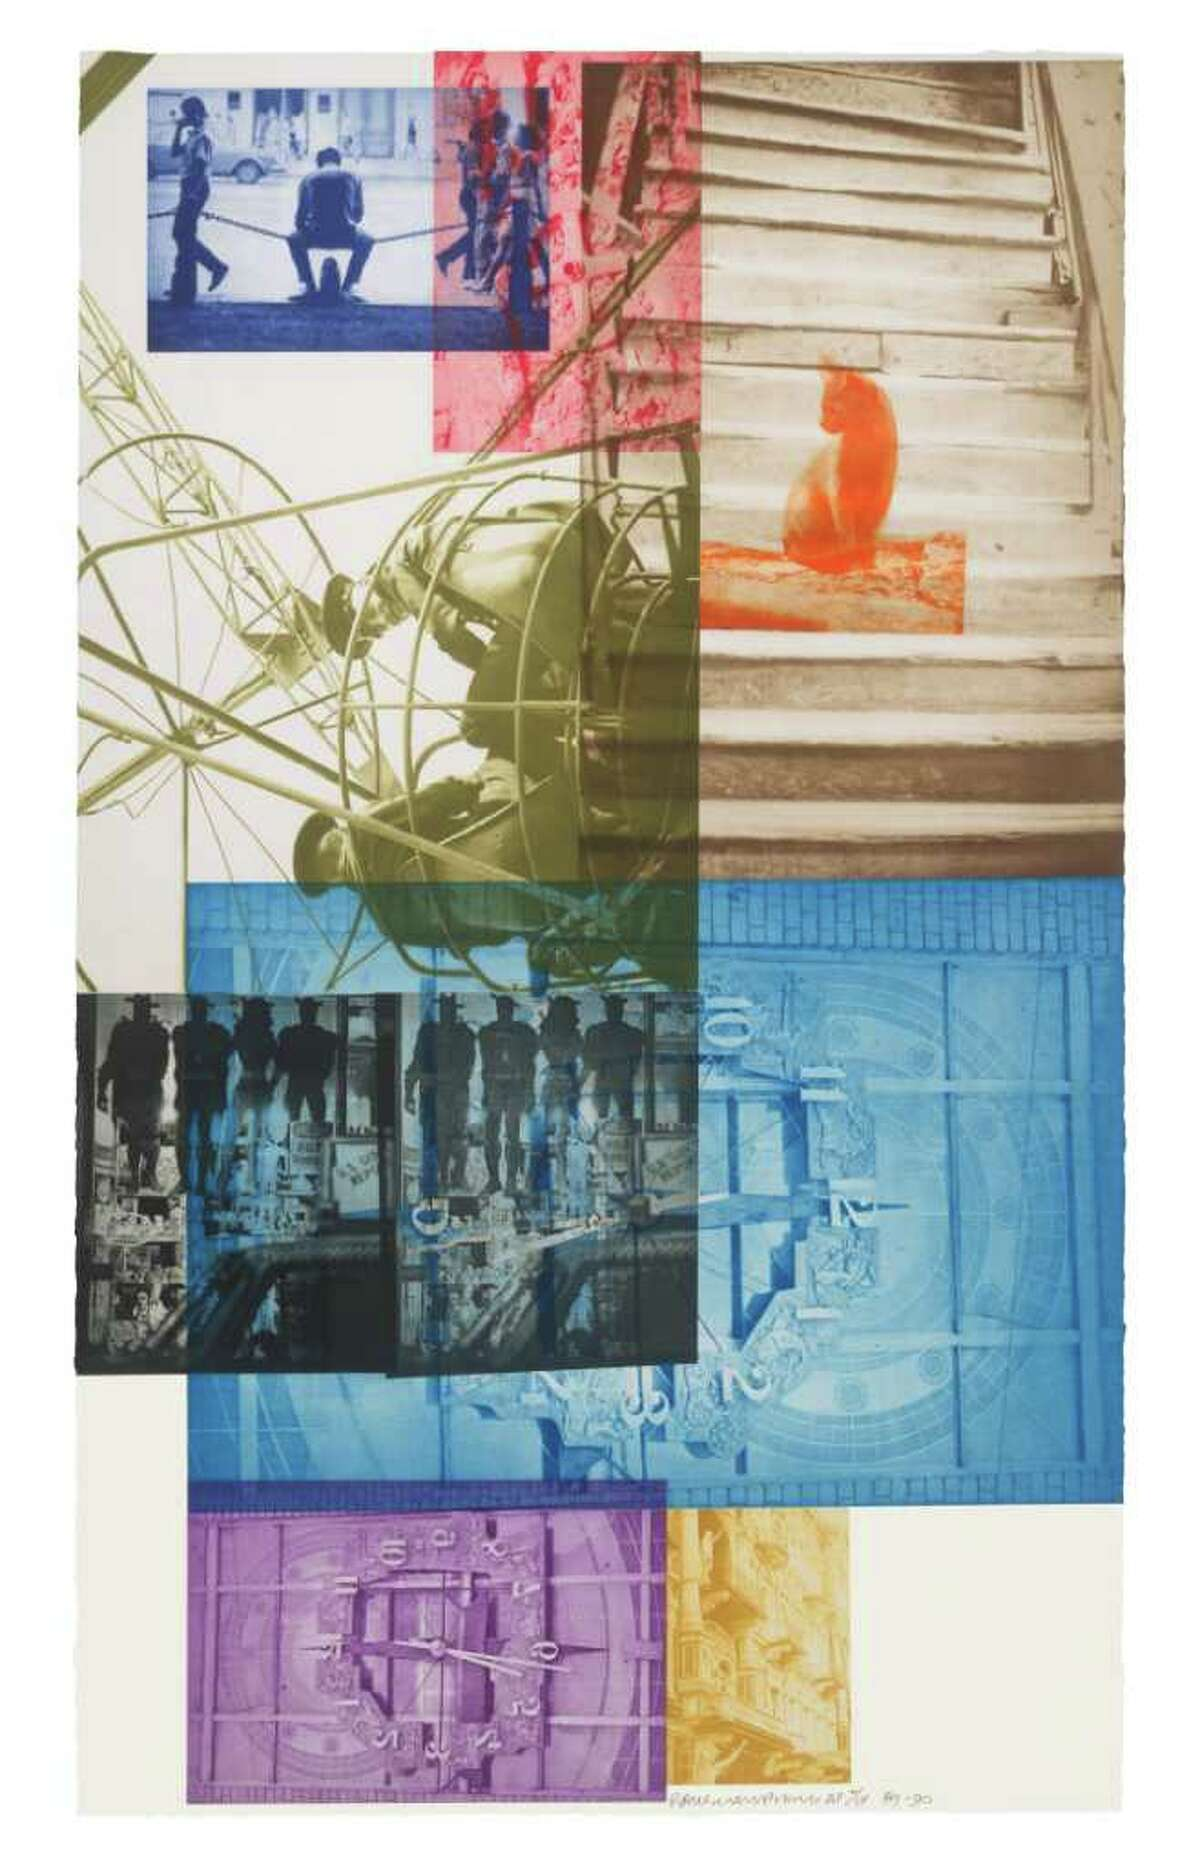 Robert Rauschenberg Stunt Man I, 1962 Lithograph in 2 colors 22 1/2 in. x 17 1/2 in. Edition 37 Published by Universal Limited Art Editions Robert Rauschenberg/ Universal Limited Art Editions, 1962/ Licensed by VAGA, New York, NY.